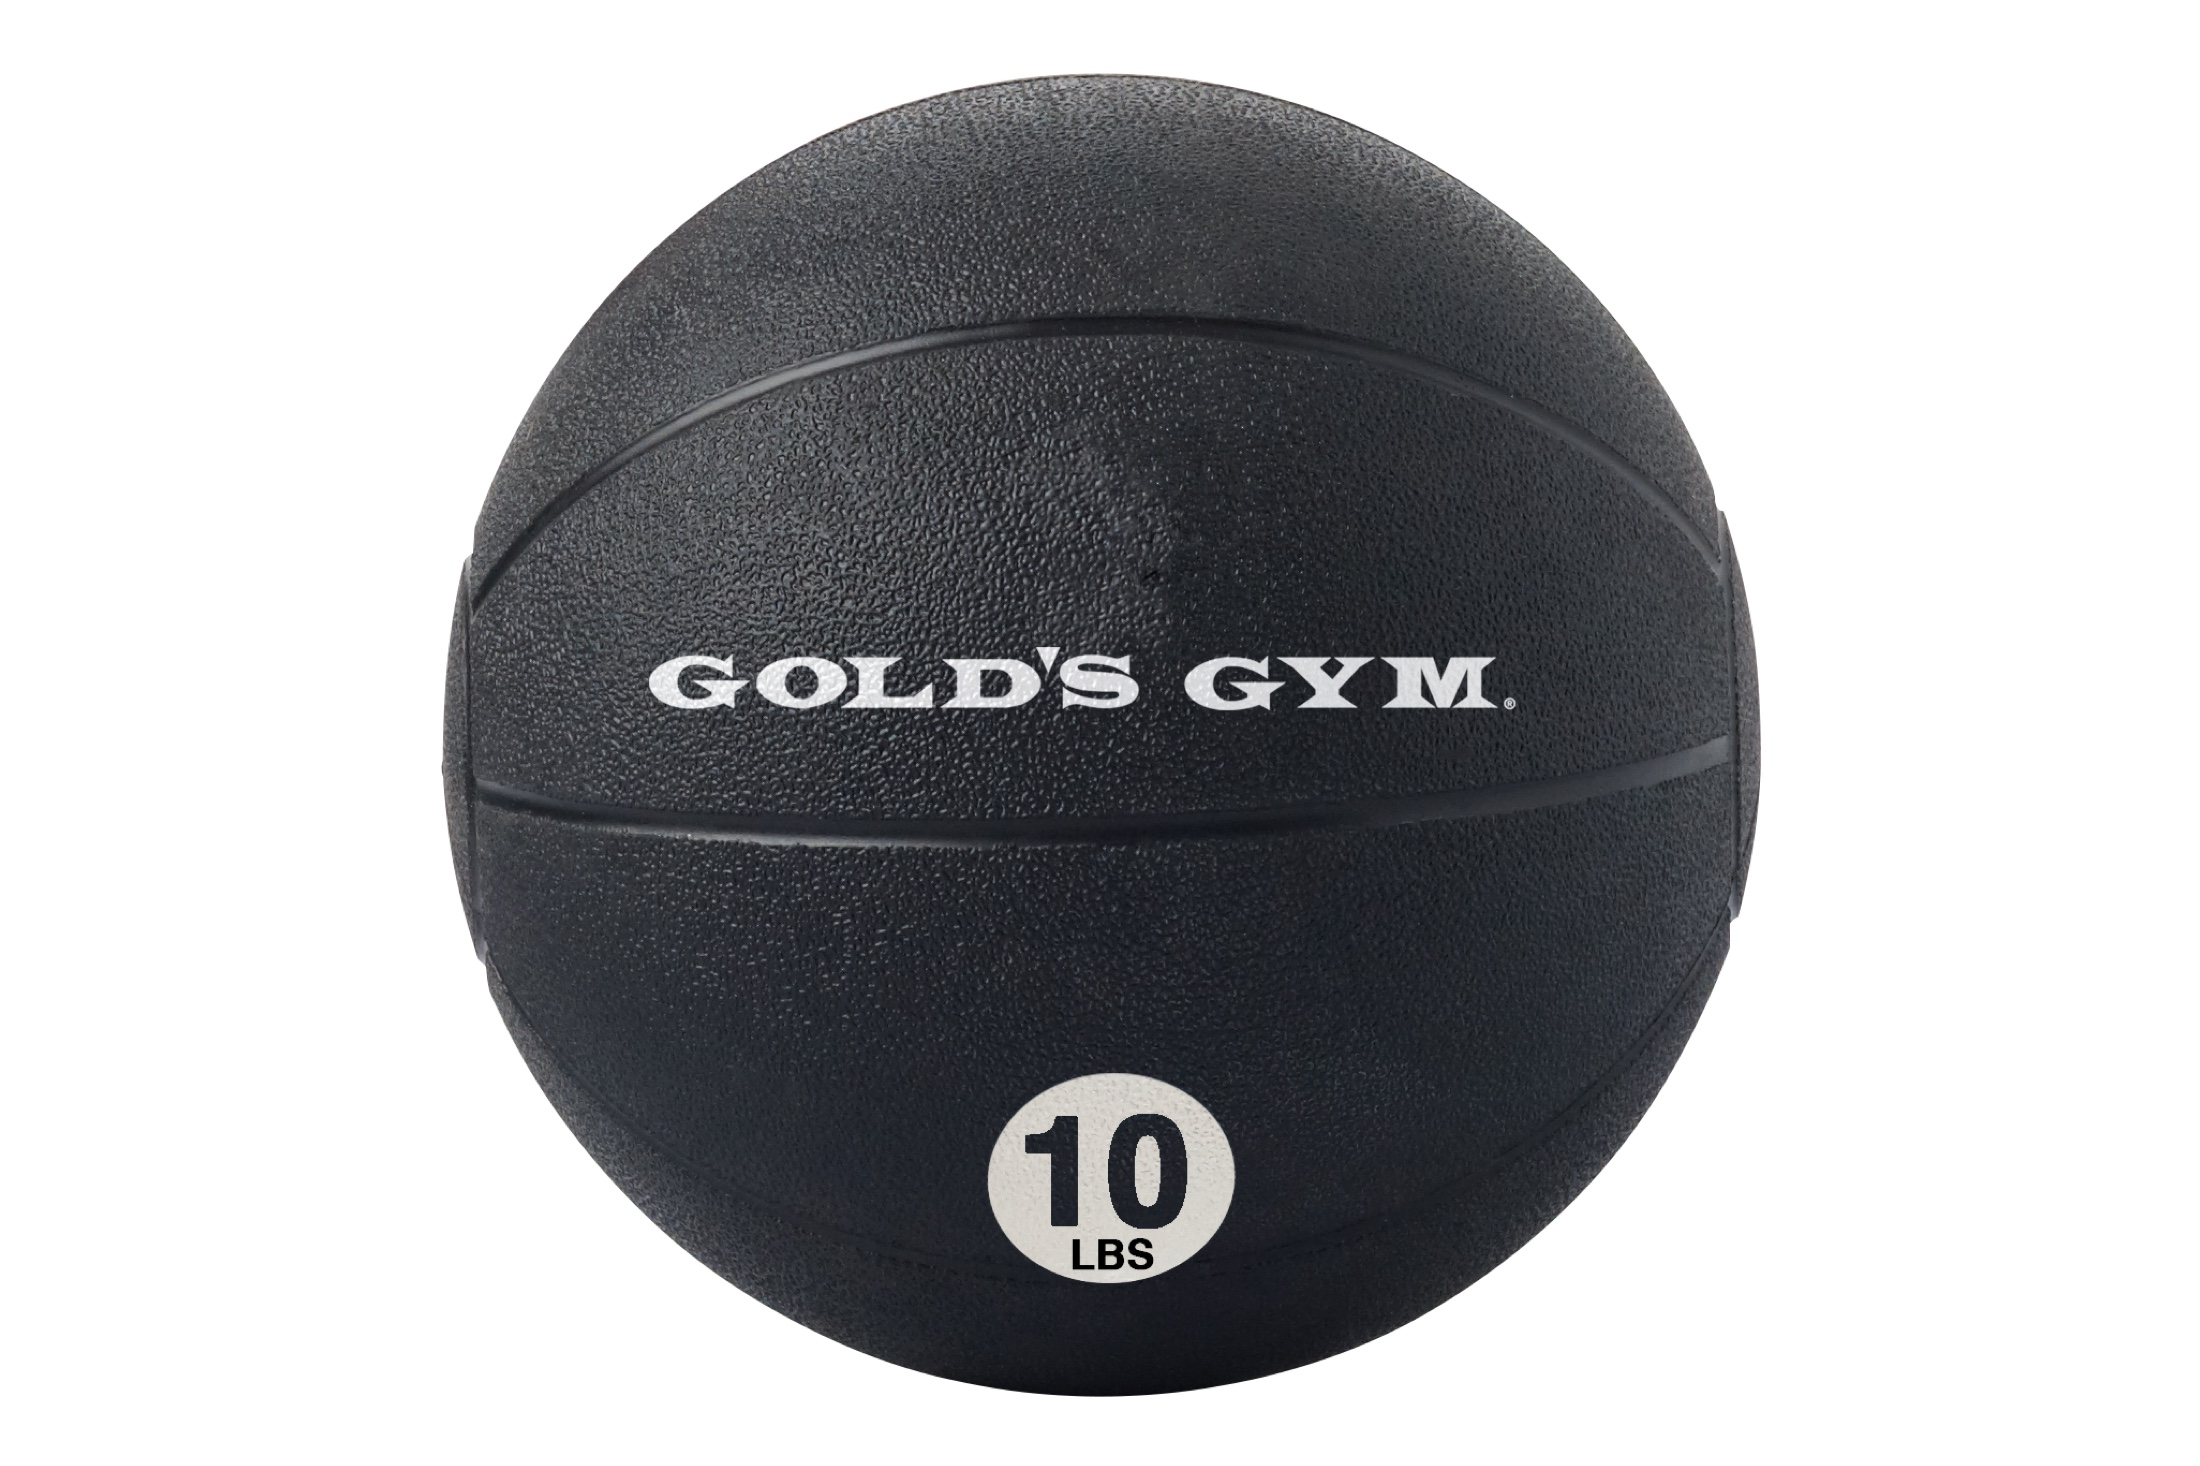 NordicTrack Gold's Gym 10 lb. Medicine Ball gallery image 1